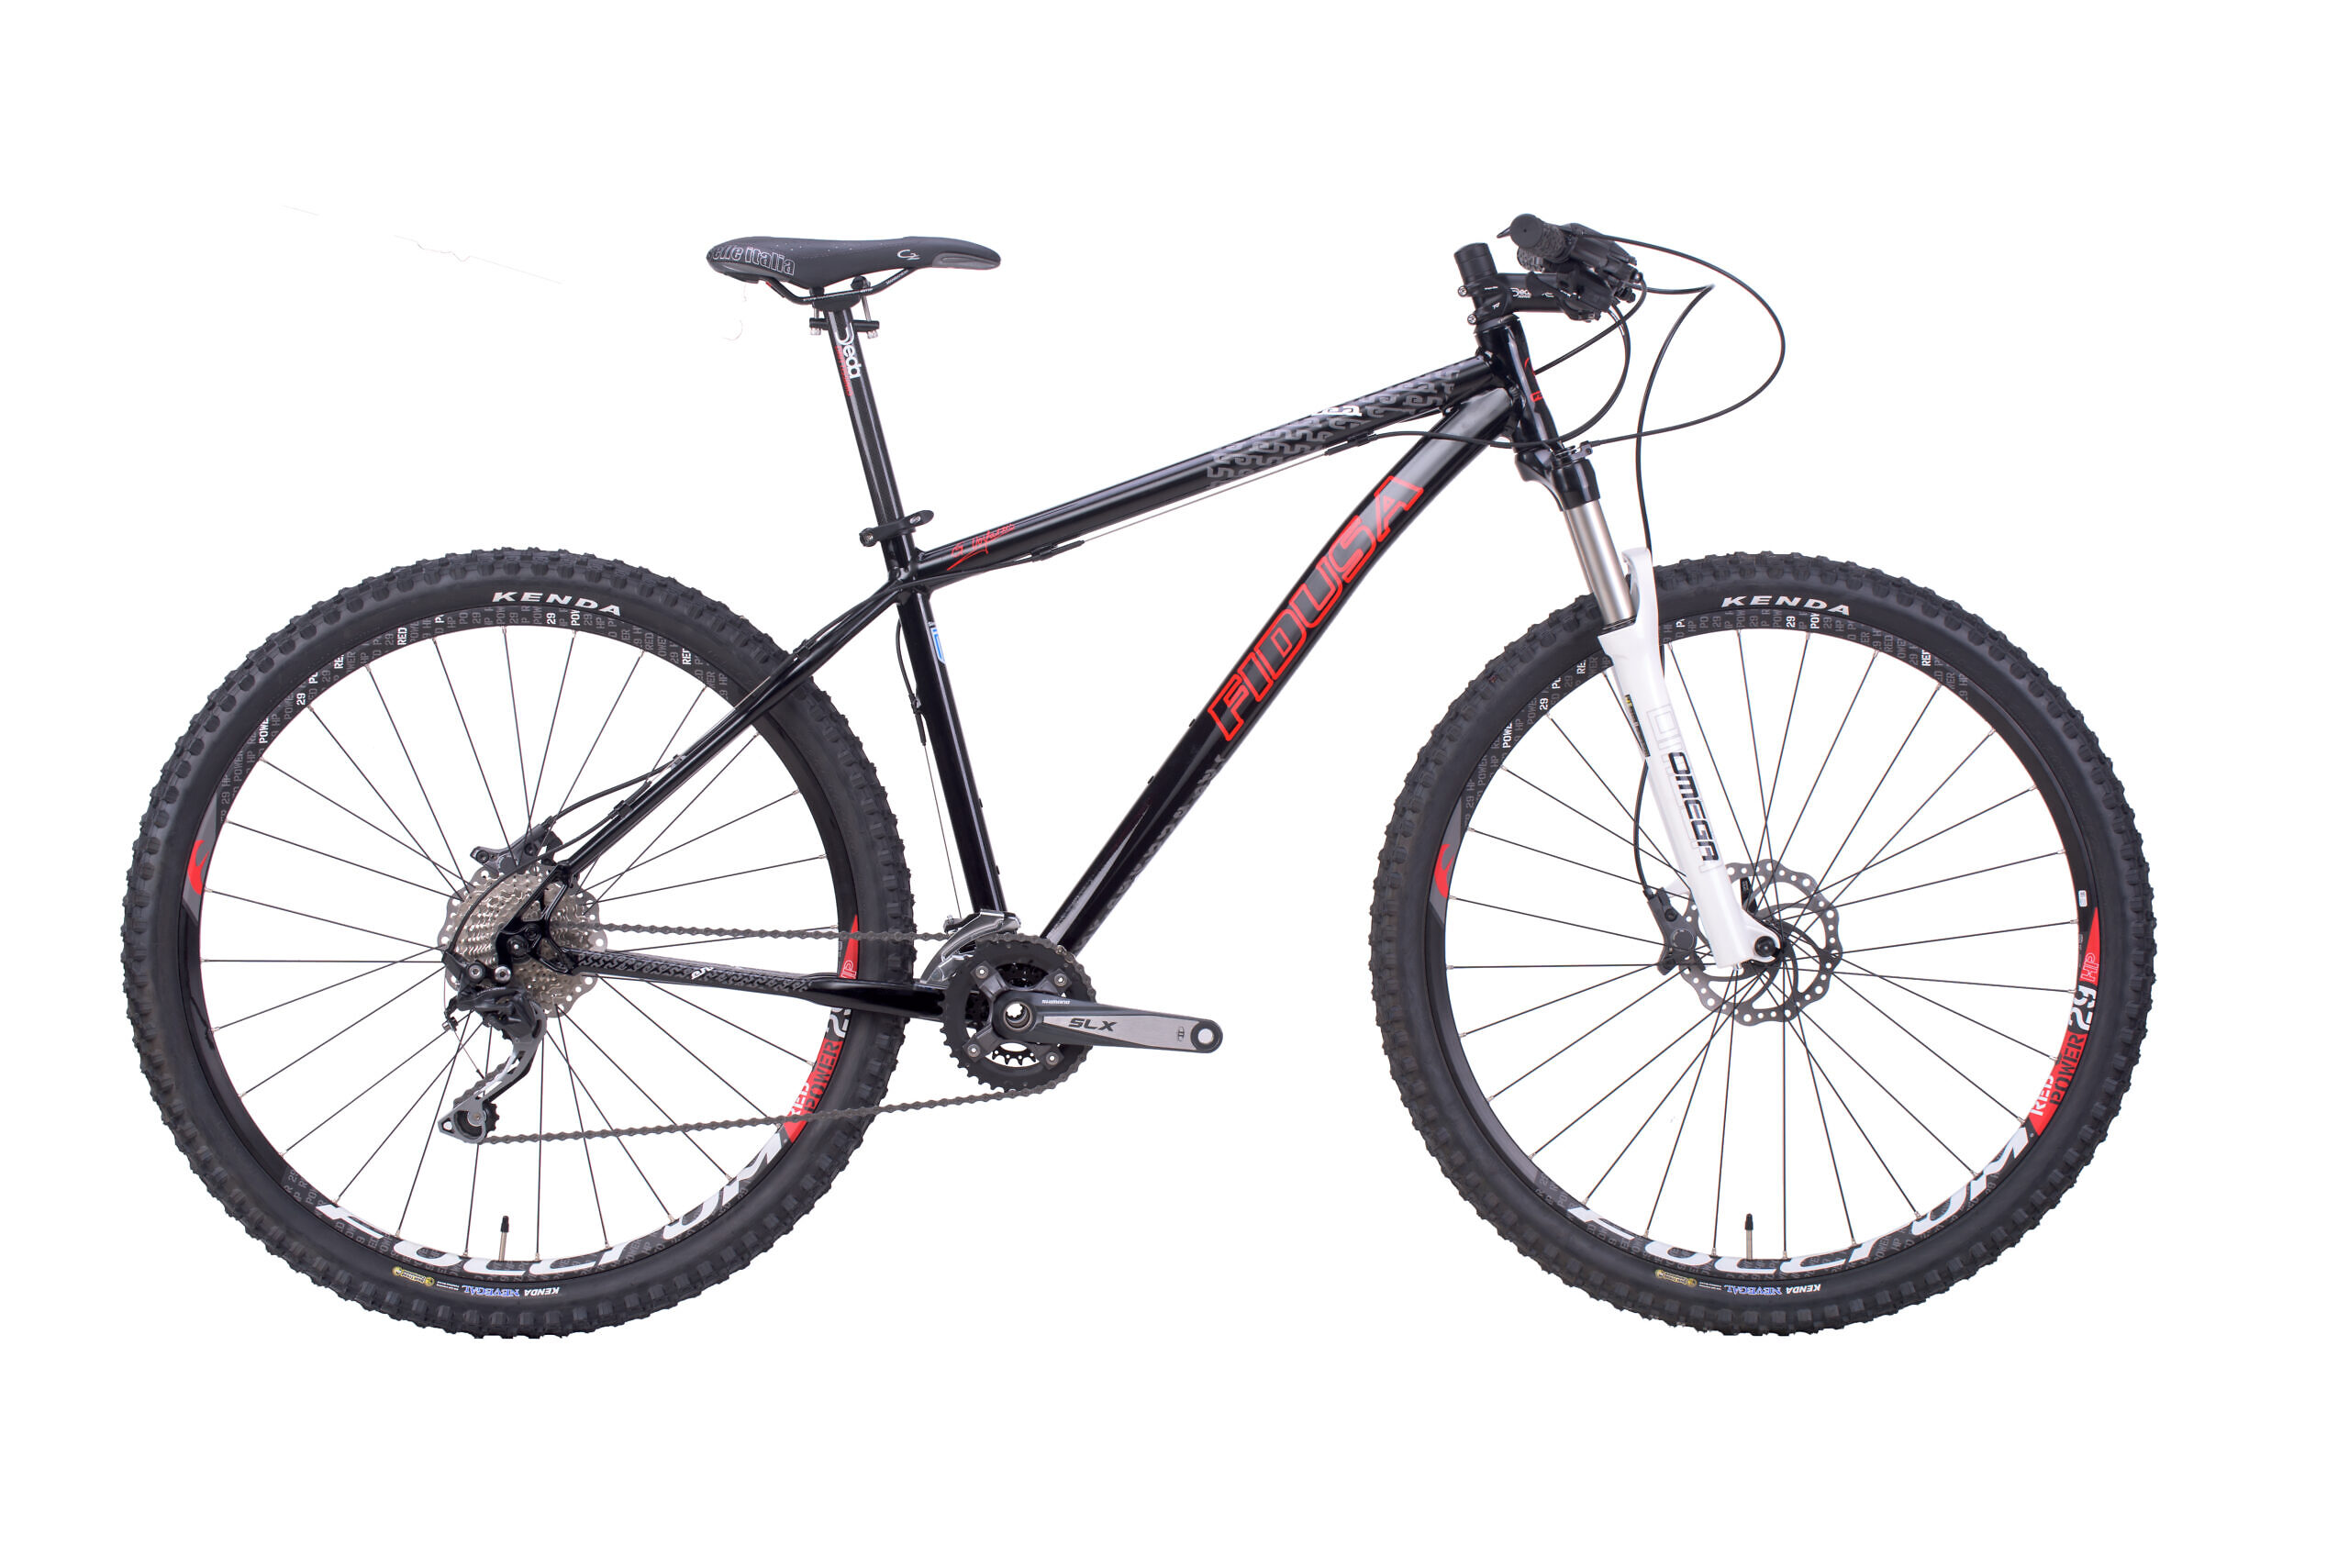 ENNEA-BIKE-land-CLEAR-scaled 29″ MTB Ennea